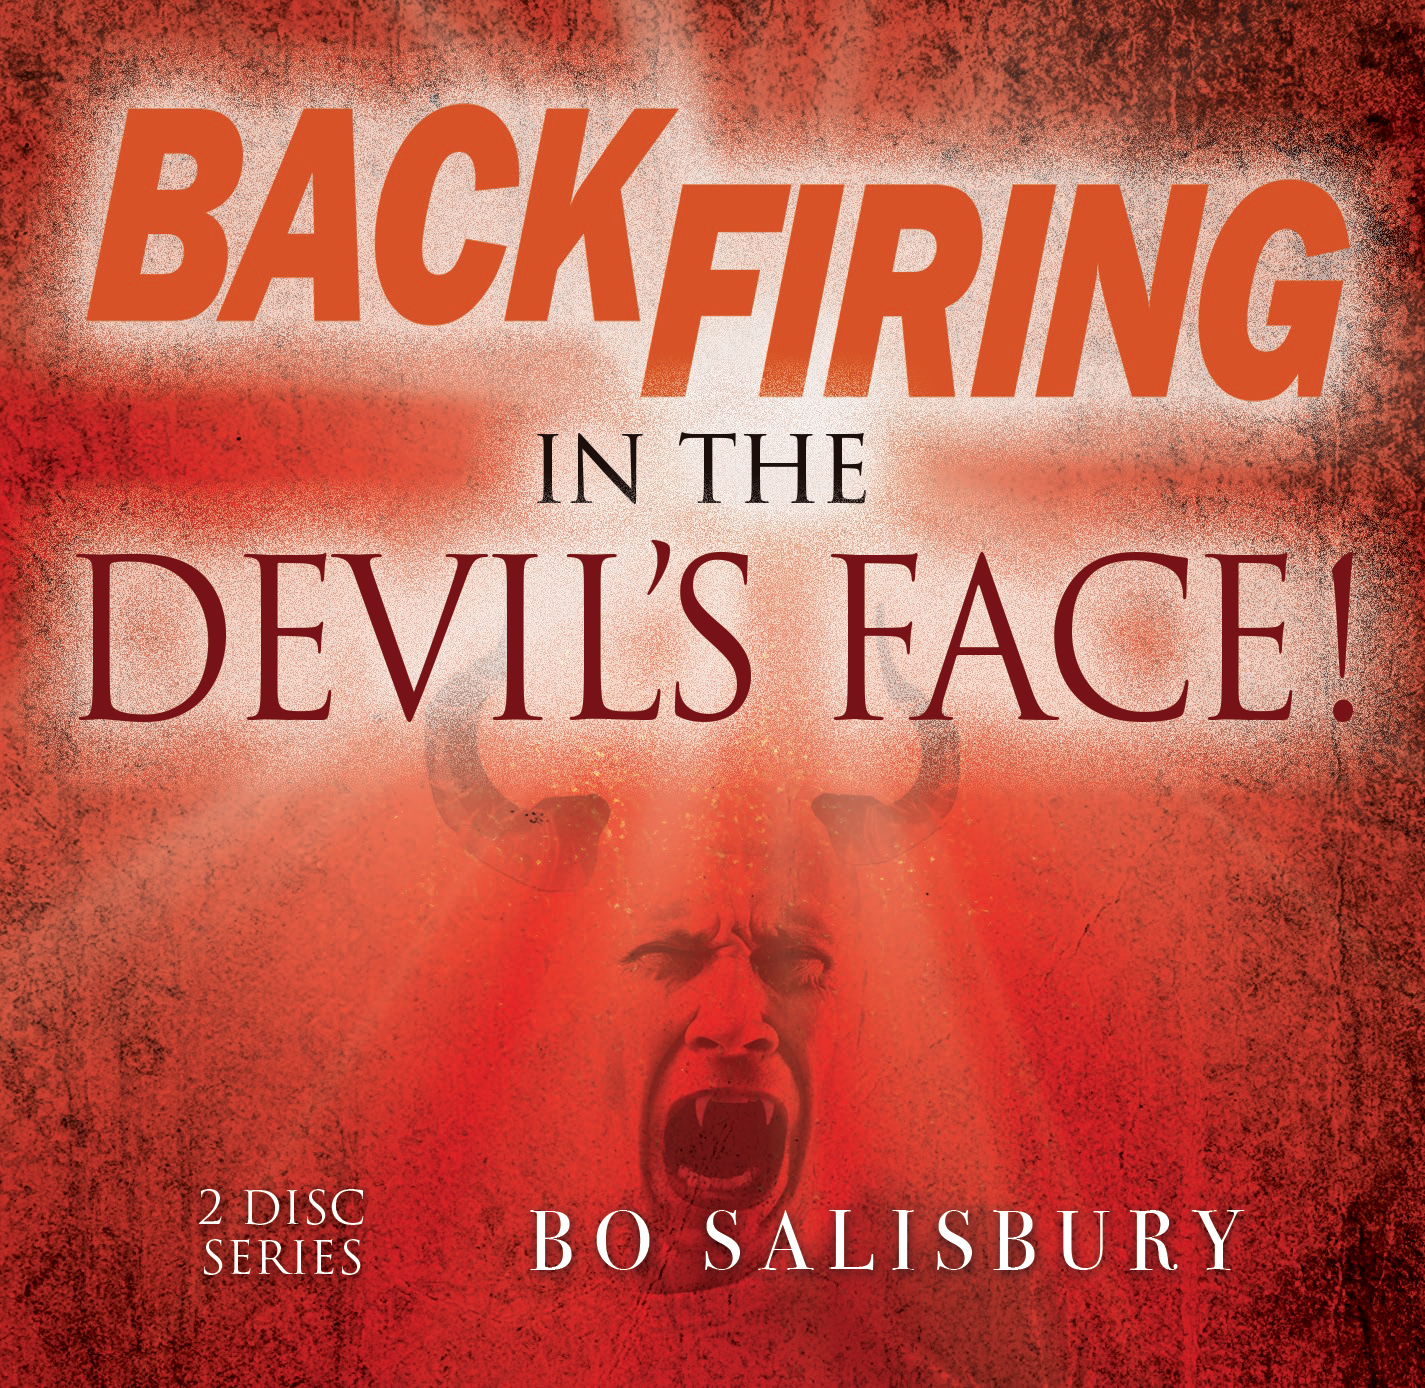 Backfiring in the Devil's Face! (MP3 download) 00028